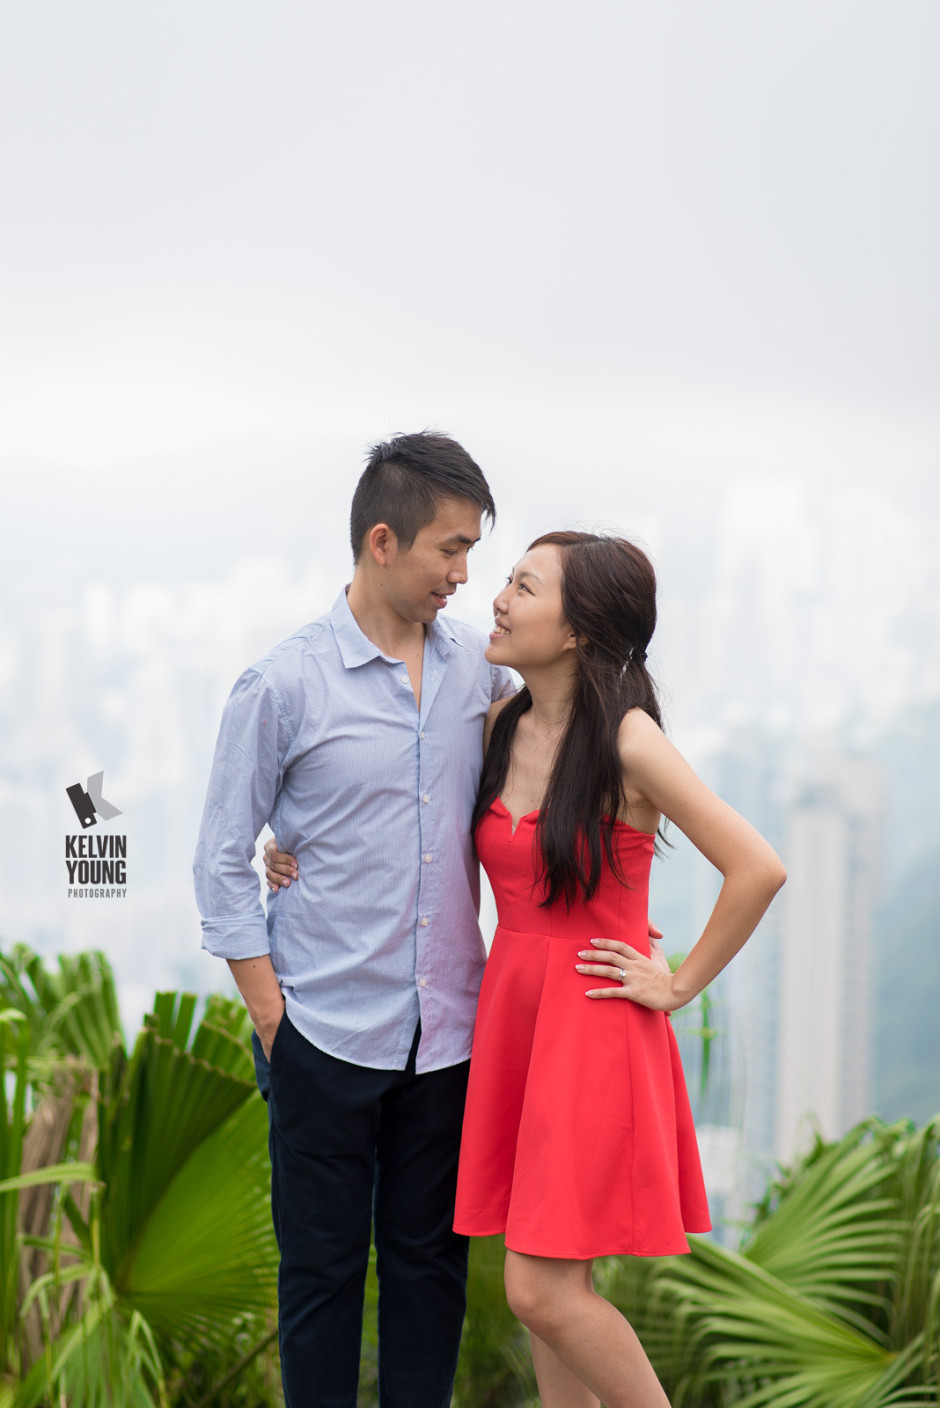 Steph-Kenny-Victoria-Peak-Garden-Portrait-Photo-Session_09